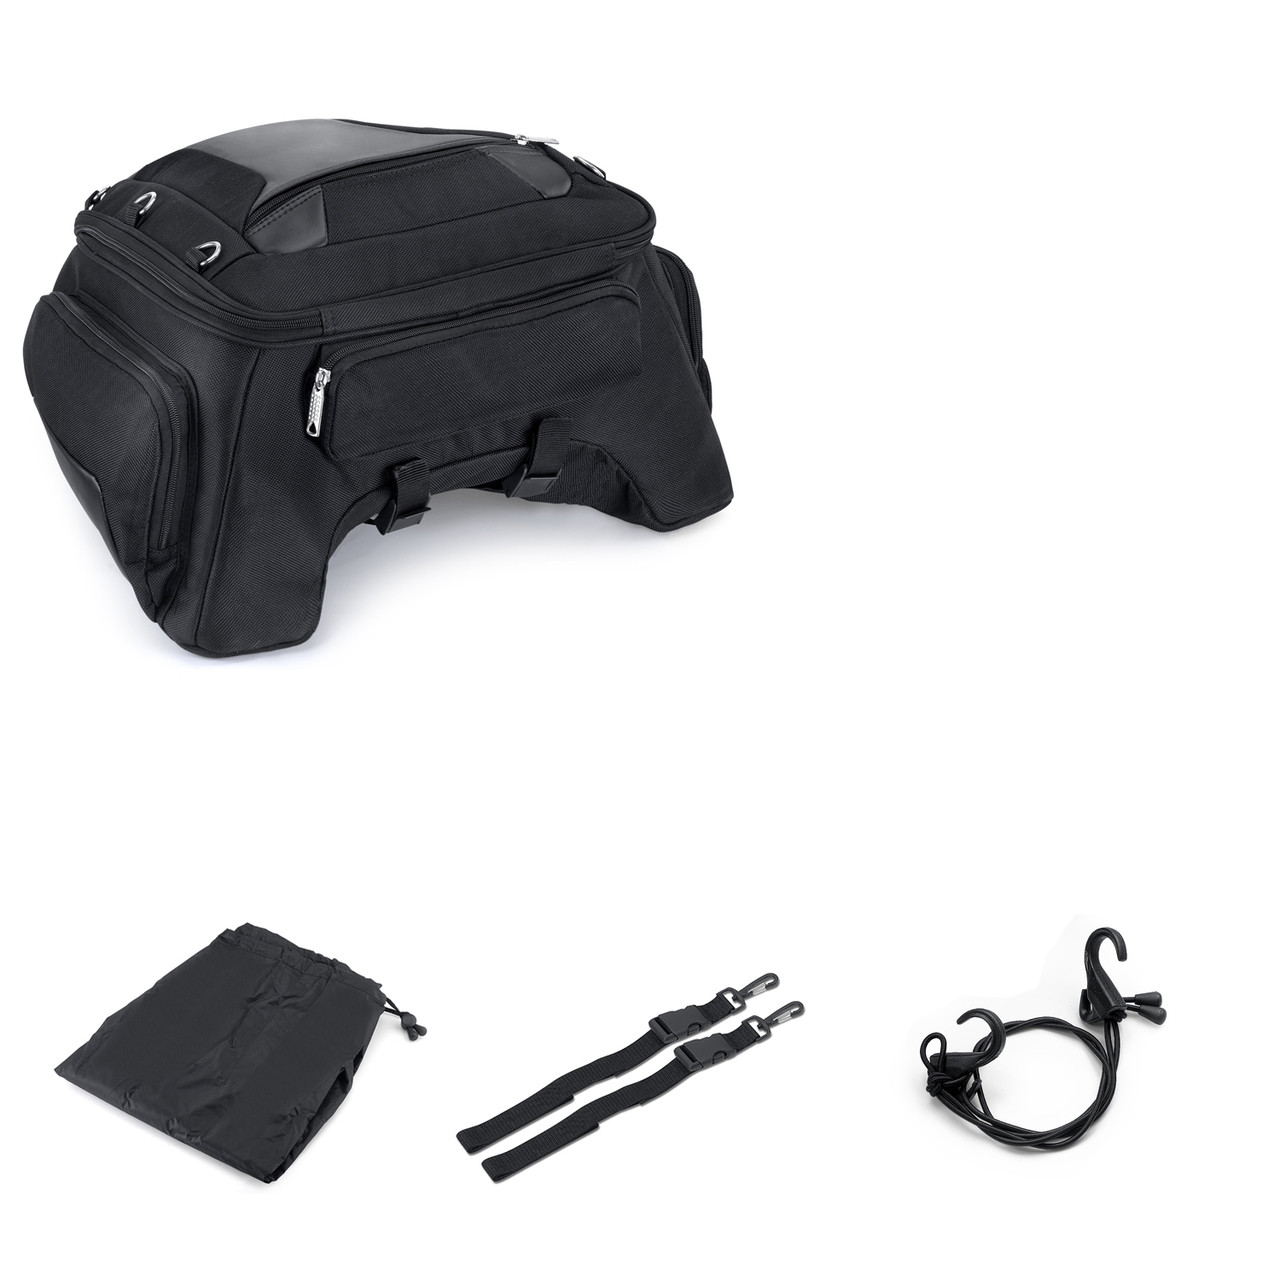 Motorcycle Tunnel Seat Luggage Bottom with Accessories